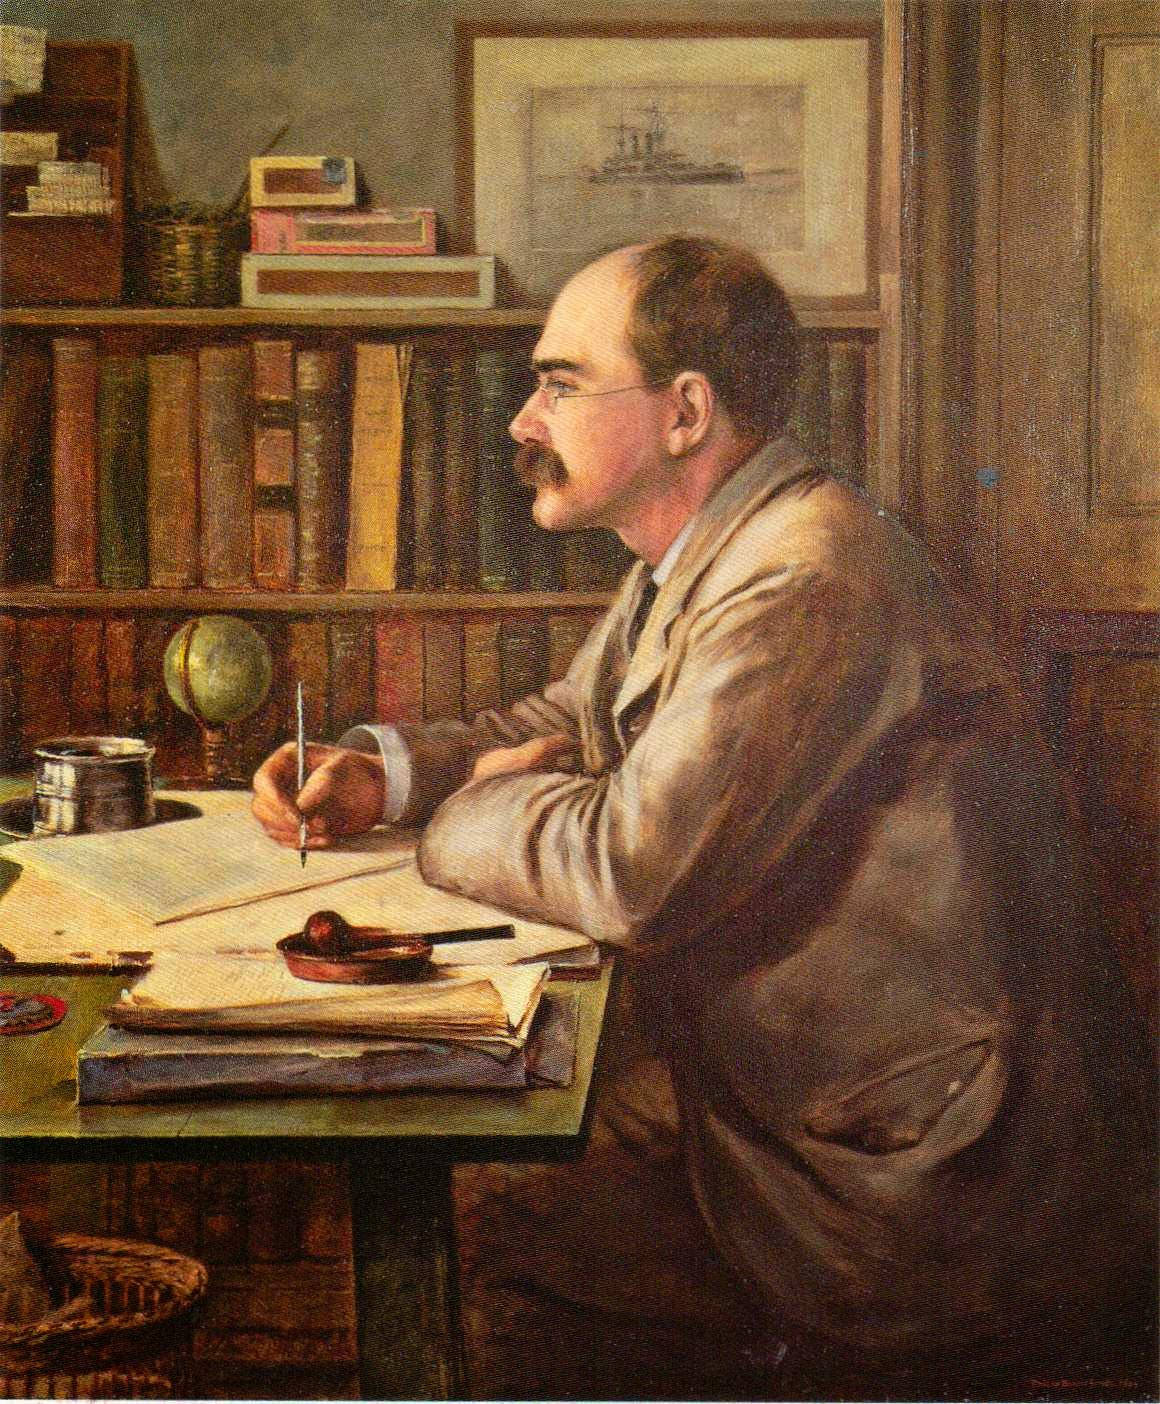 Rudyard Kipling, The finest story in the world, Tales of mystery, Relatos de terror, Horror stories, Short stories, Science fiction stories, Anthology of horror, Antología de terror, Anthology of mystery, Antología de misterio, Scary stories, Scary Tales, Sir Philip Burne-Jones